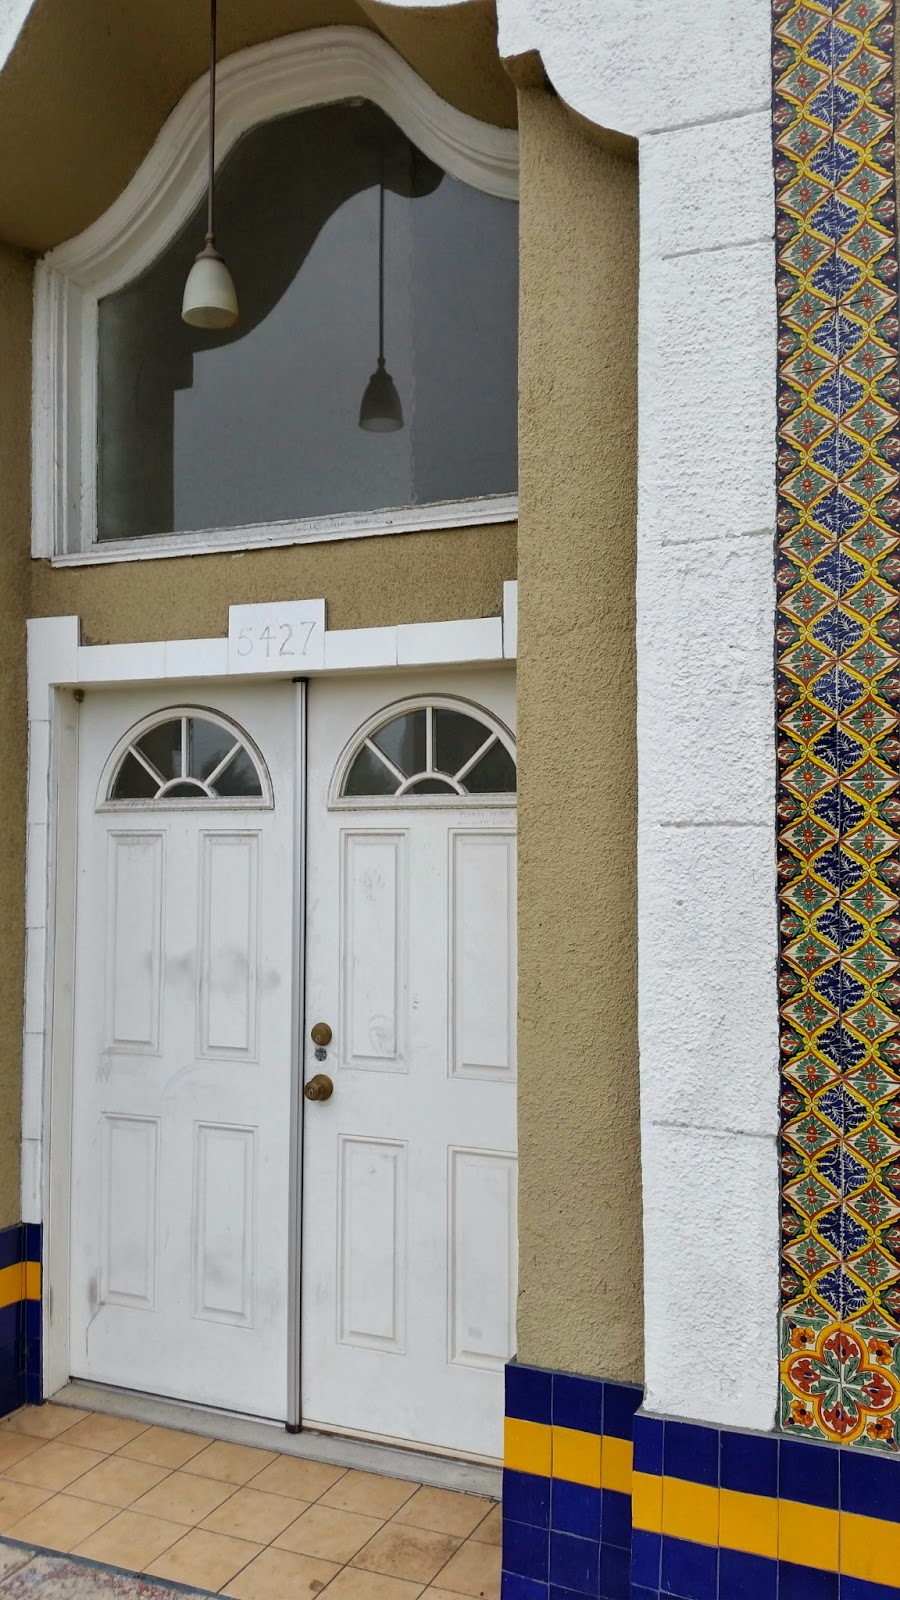 Tile ribbons cascade from the Spanish Baroque window details.